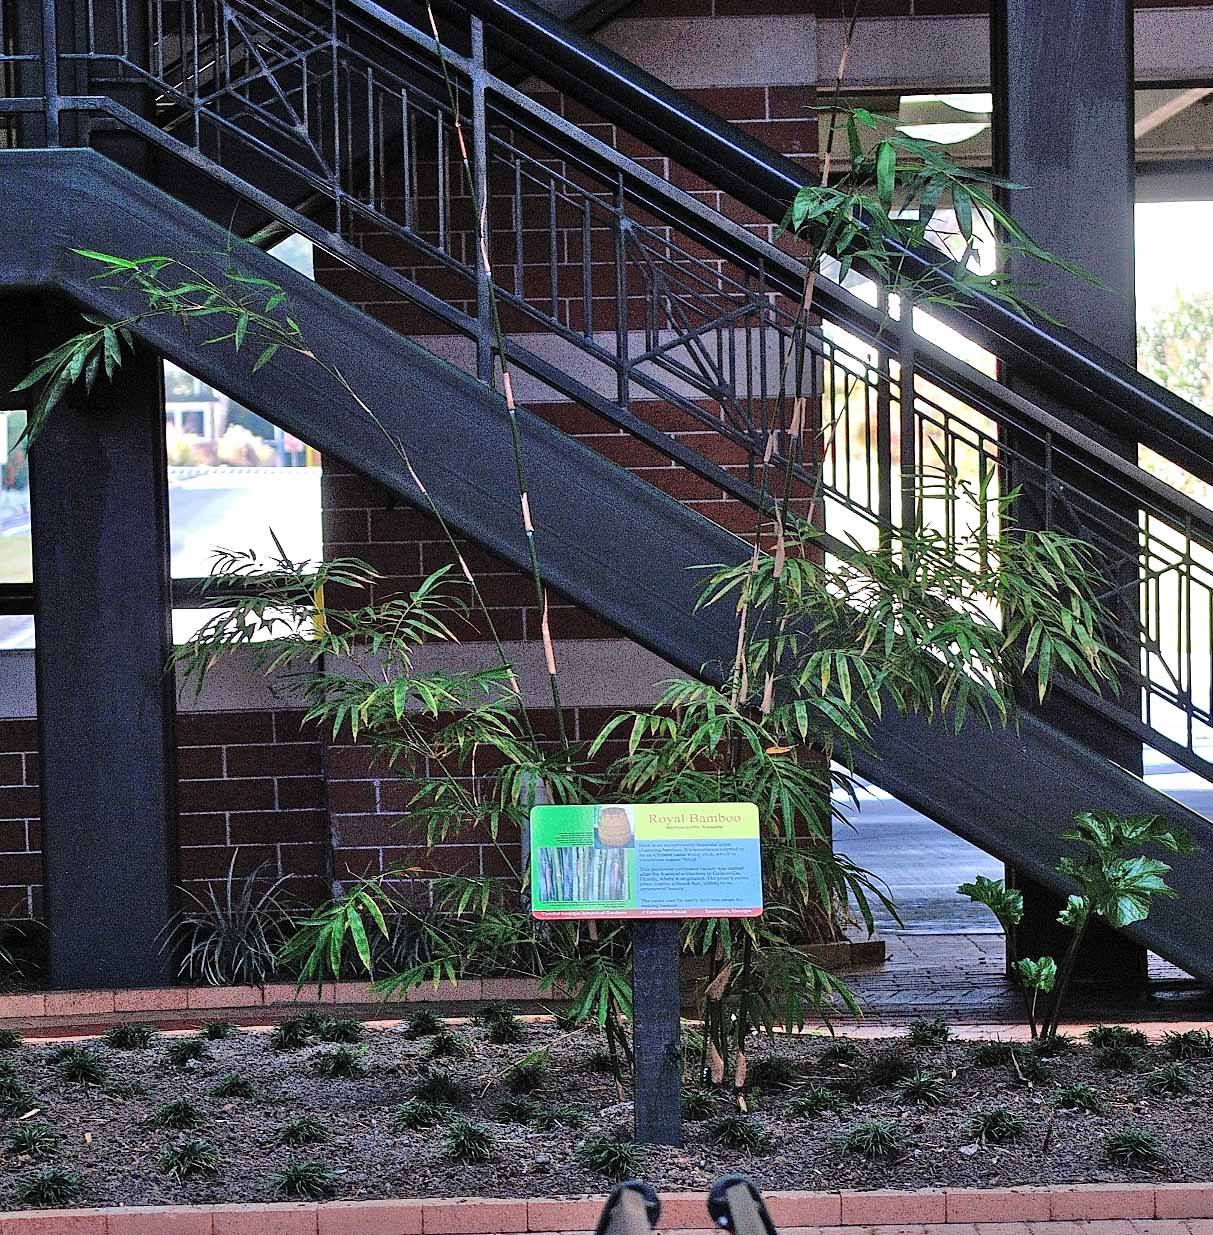 This small planting of Royal Bamboo at the Savannah/Hilton Head International Airport's atrium garden should fill its planting bed within a few years. It is one of the 9 varieties of bamboo donated to the airport by the Coastal Georgia Botanical Gardens at the Historic Bamboo Farms